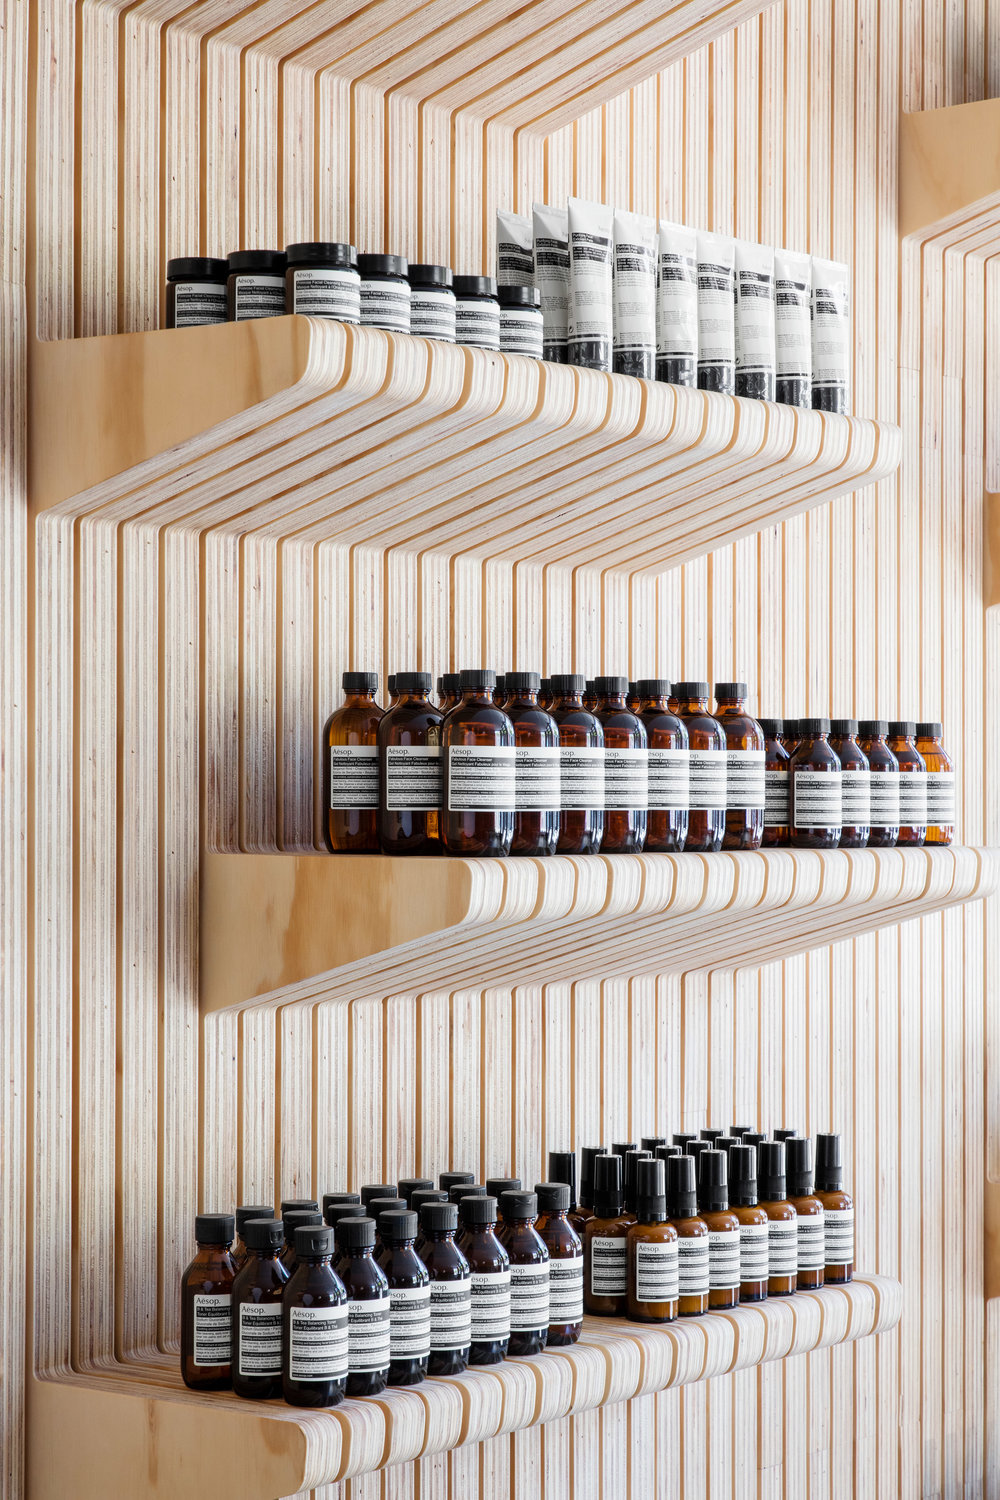 aesop-uws-tacklebox-architecture-interiors-retail_dezeen_2364_col_3.jpg